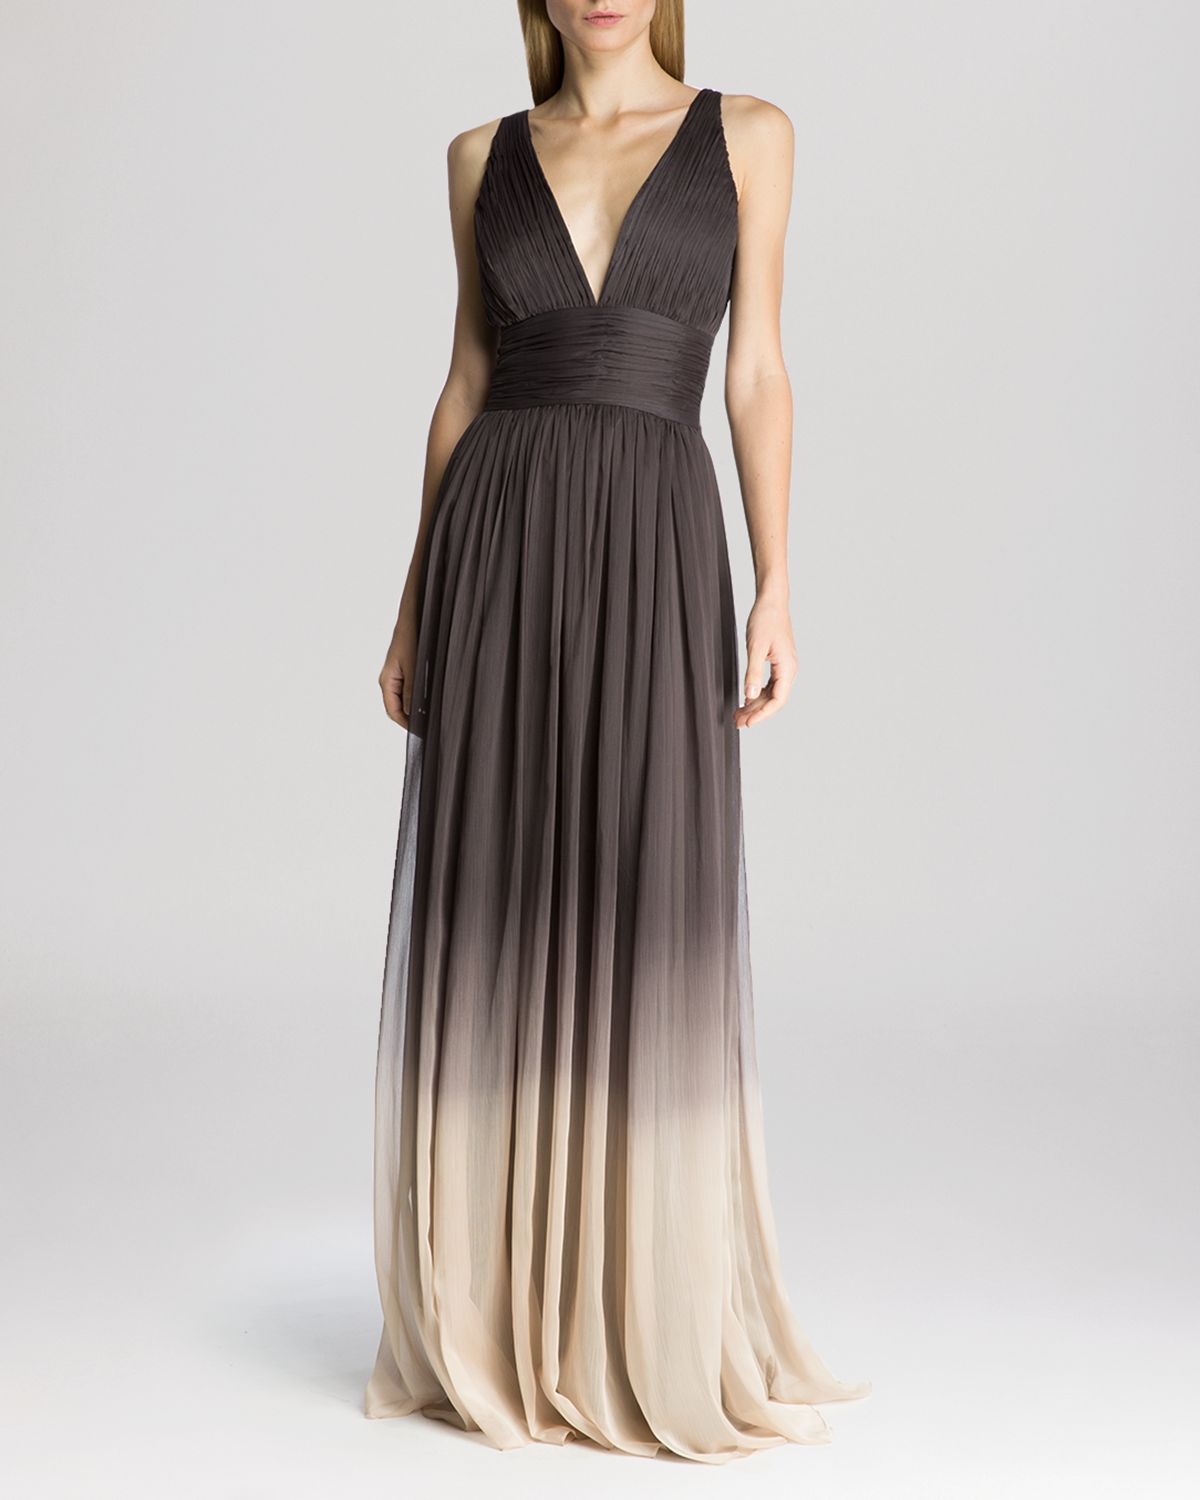 Lyst - Halston Gown - Sleeveless V-Neck Ombré in Gray